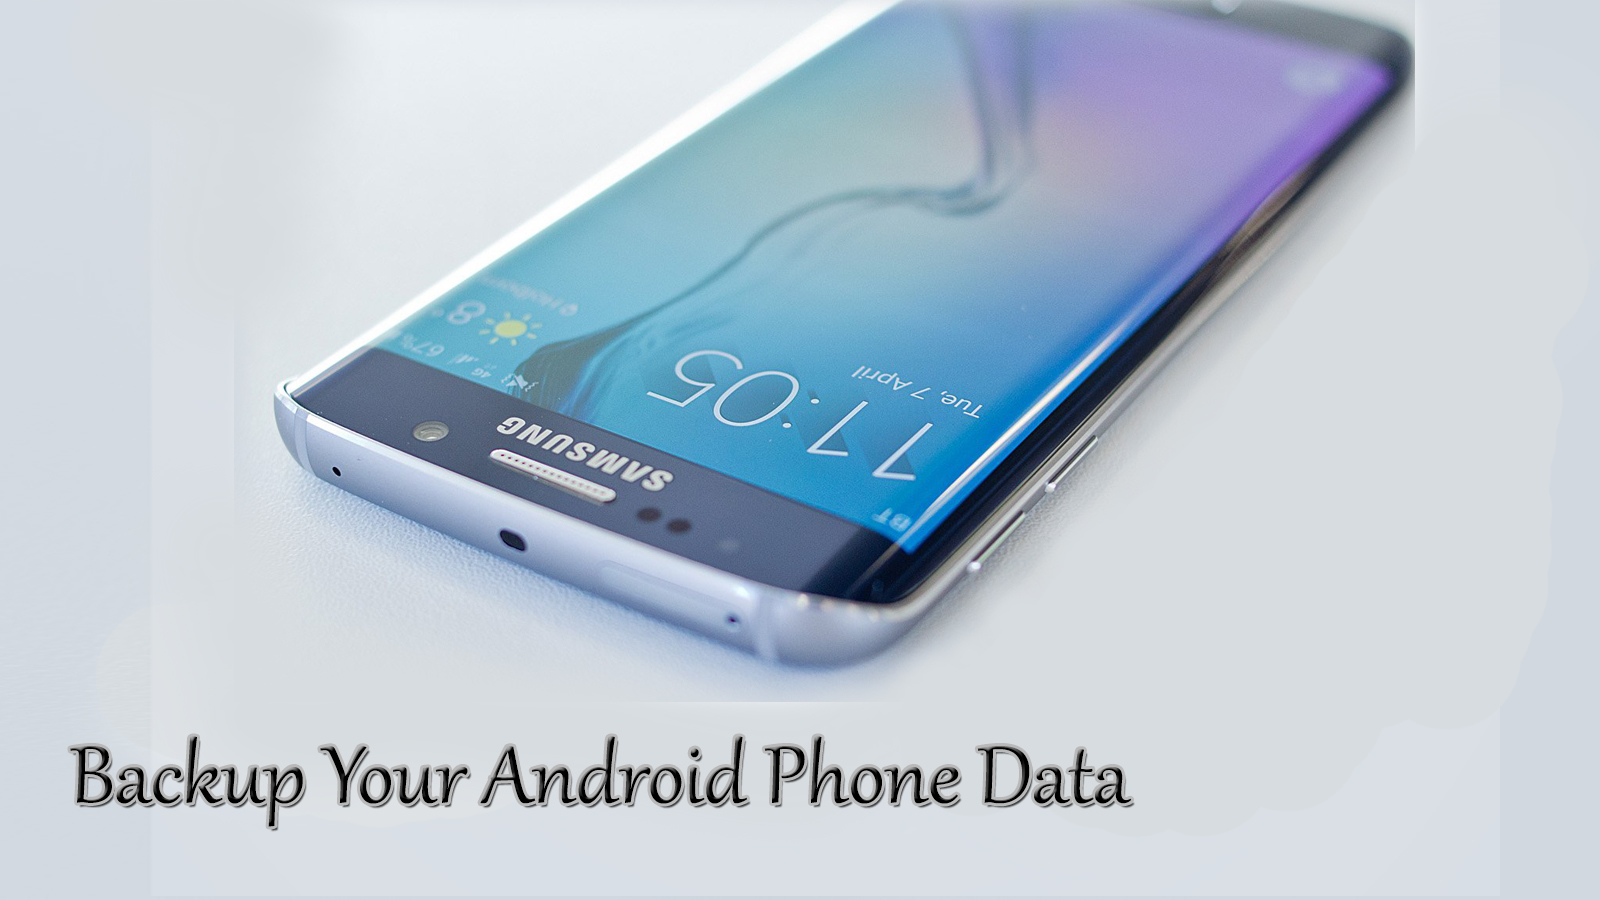 Backup & Restore Your Android Phone Data